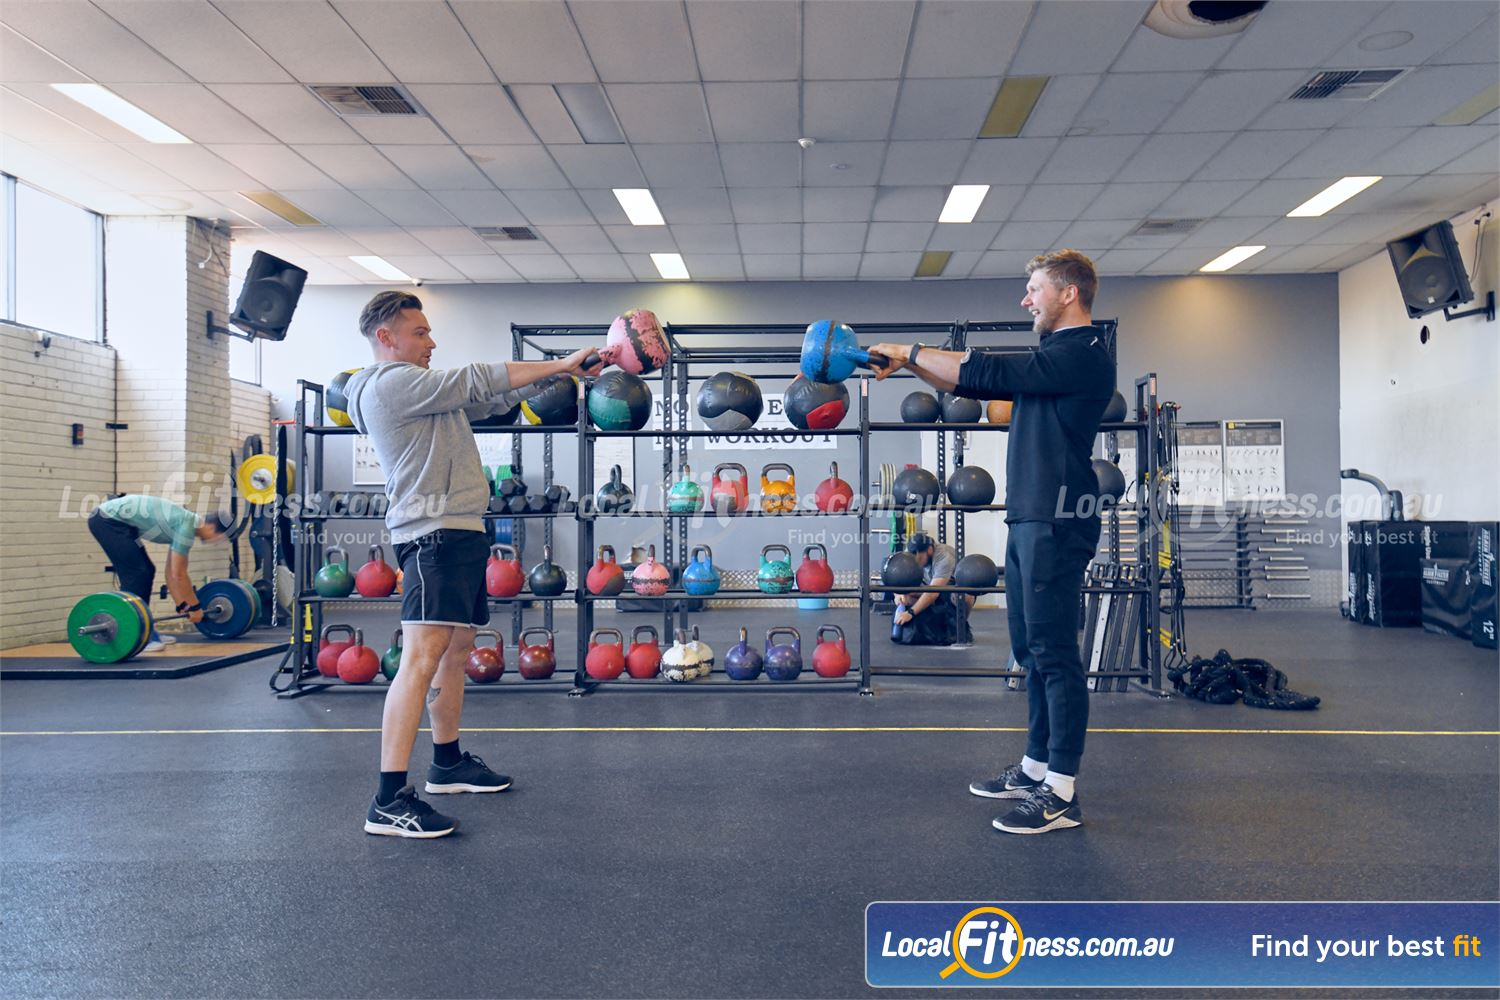 Goodlife Health Clubs Near Ashwood Vary your training to include kettlebells in our Glen Iris gym.